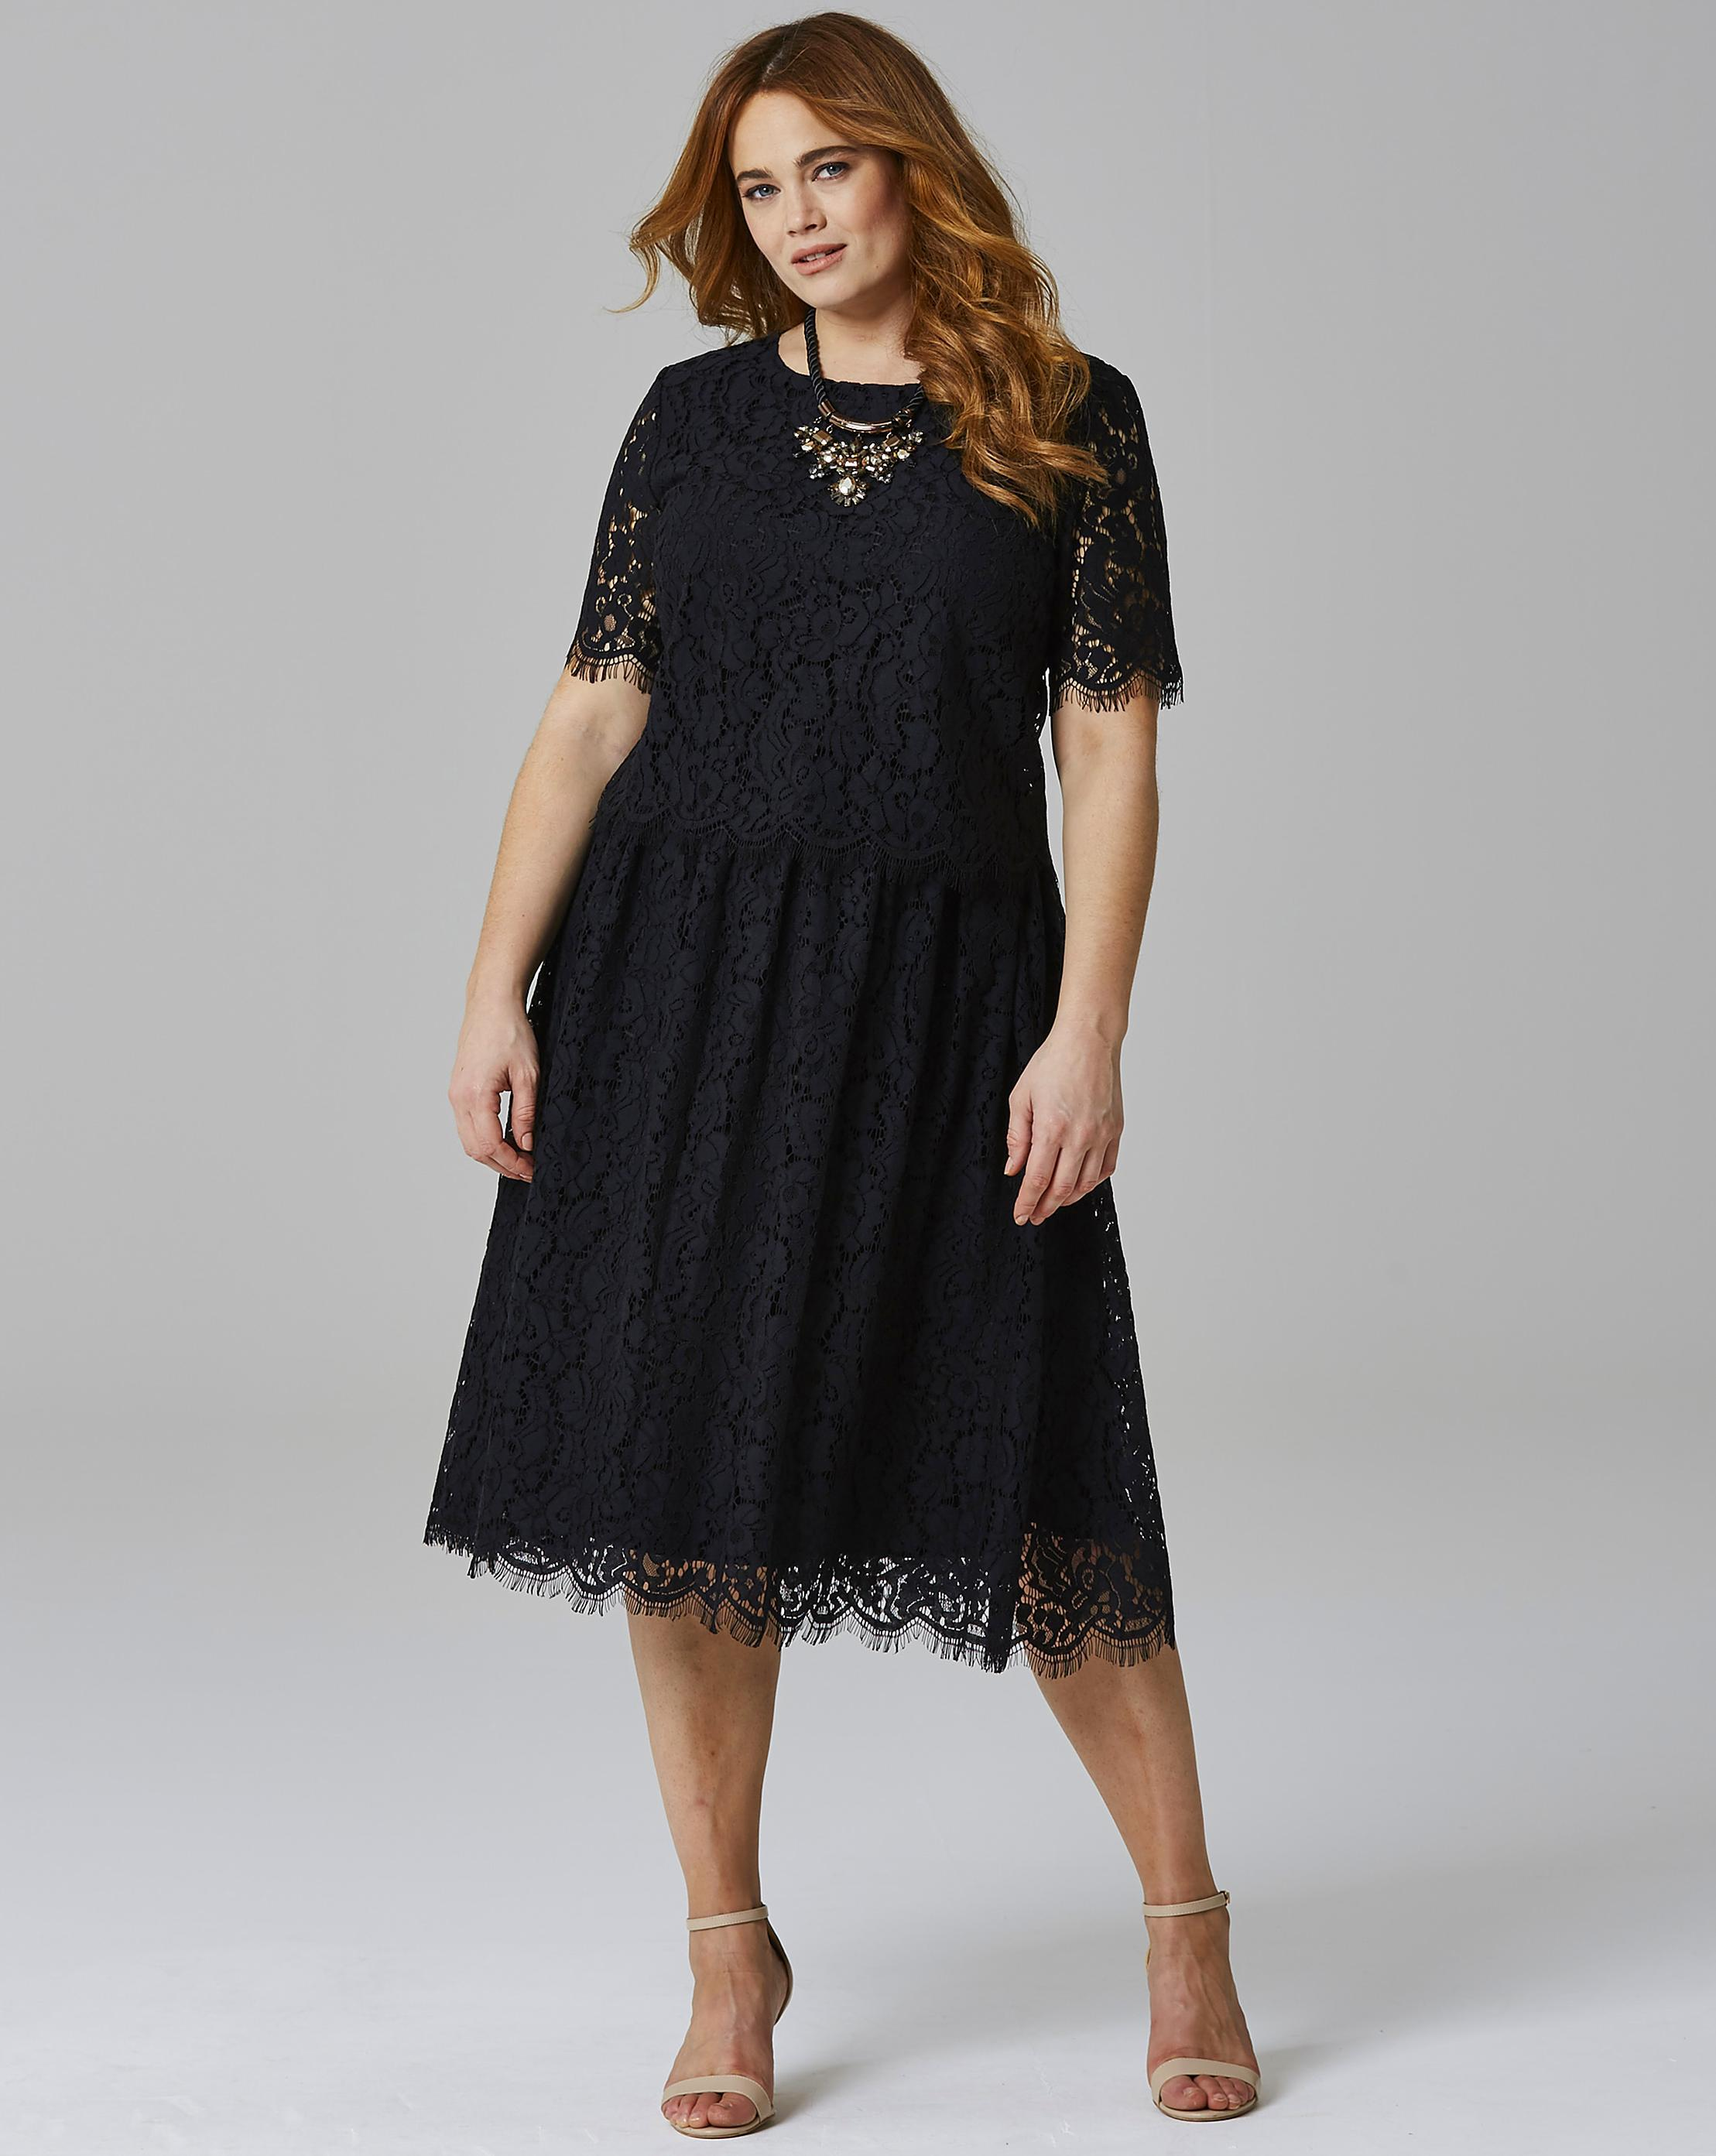 Lyst - Simply Be Lace Layer Prom Dress in Black